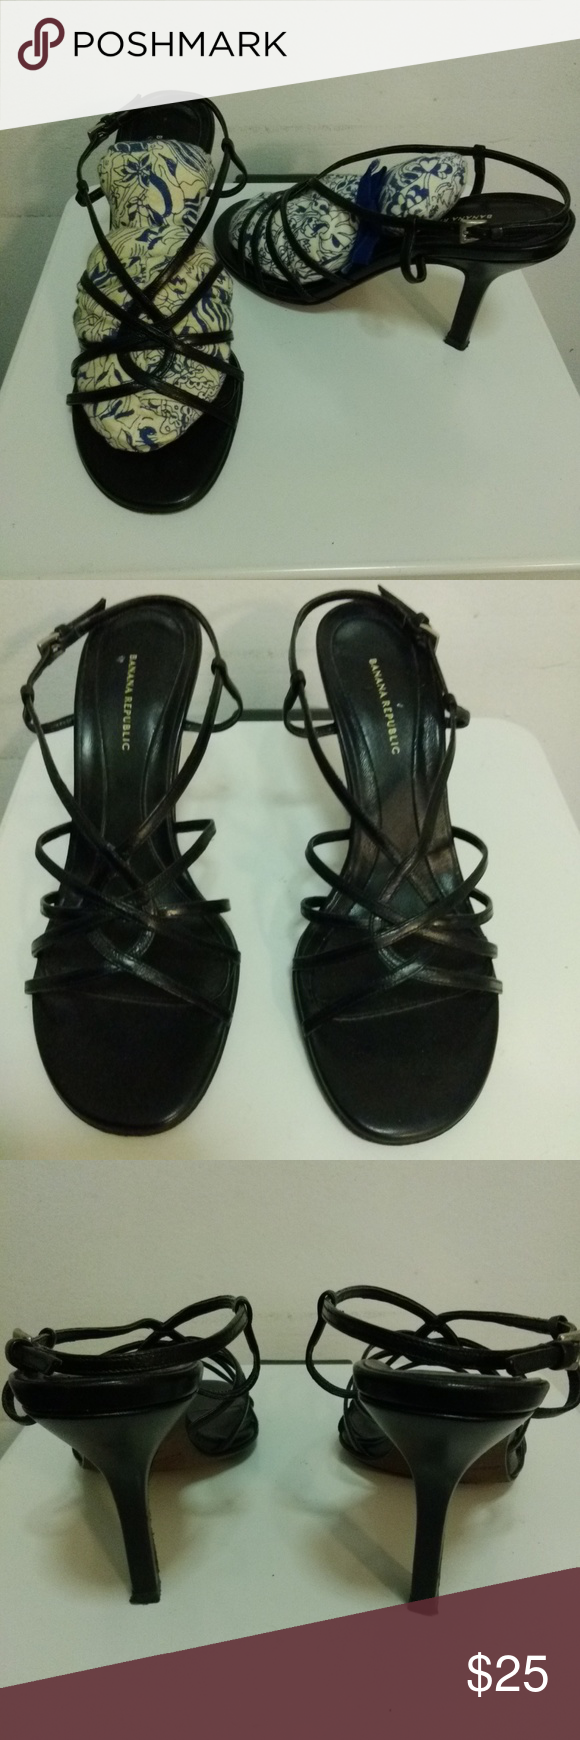 7c4c539209 STRAPPY SANDAL HEELS WORN ONLY A COUPLE OF TIMES Banana Republic, made in  Italy,